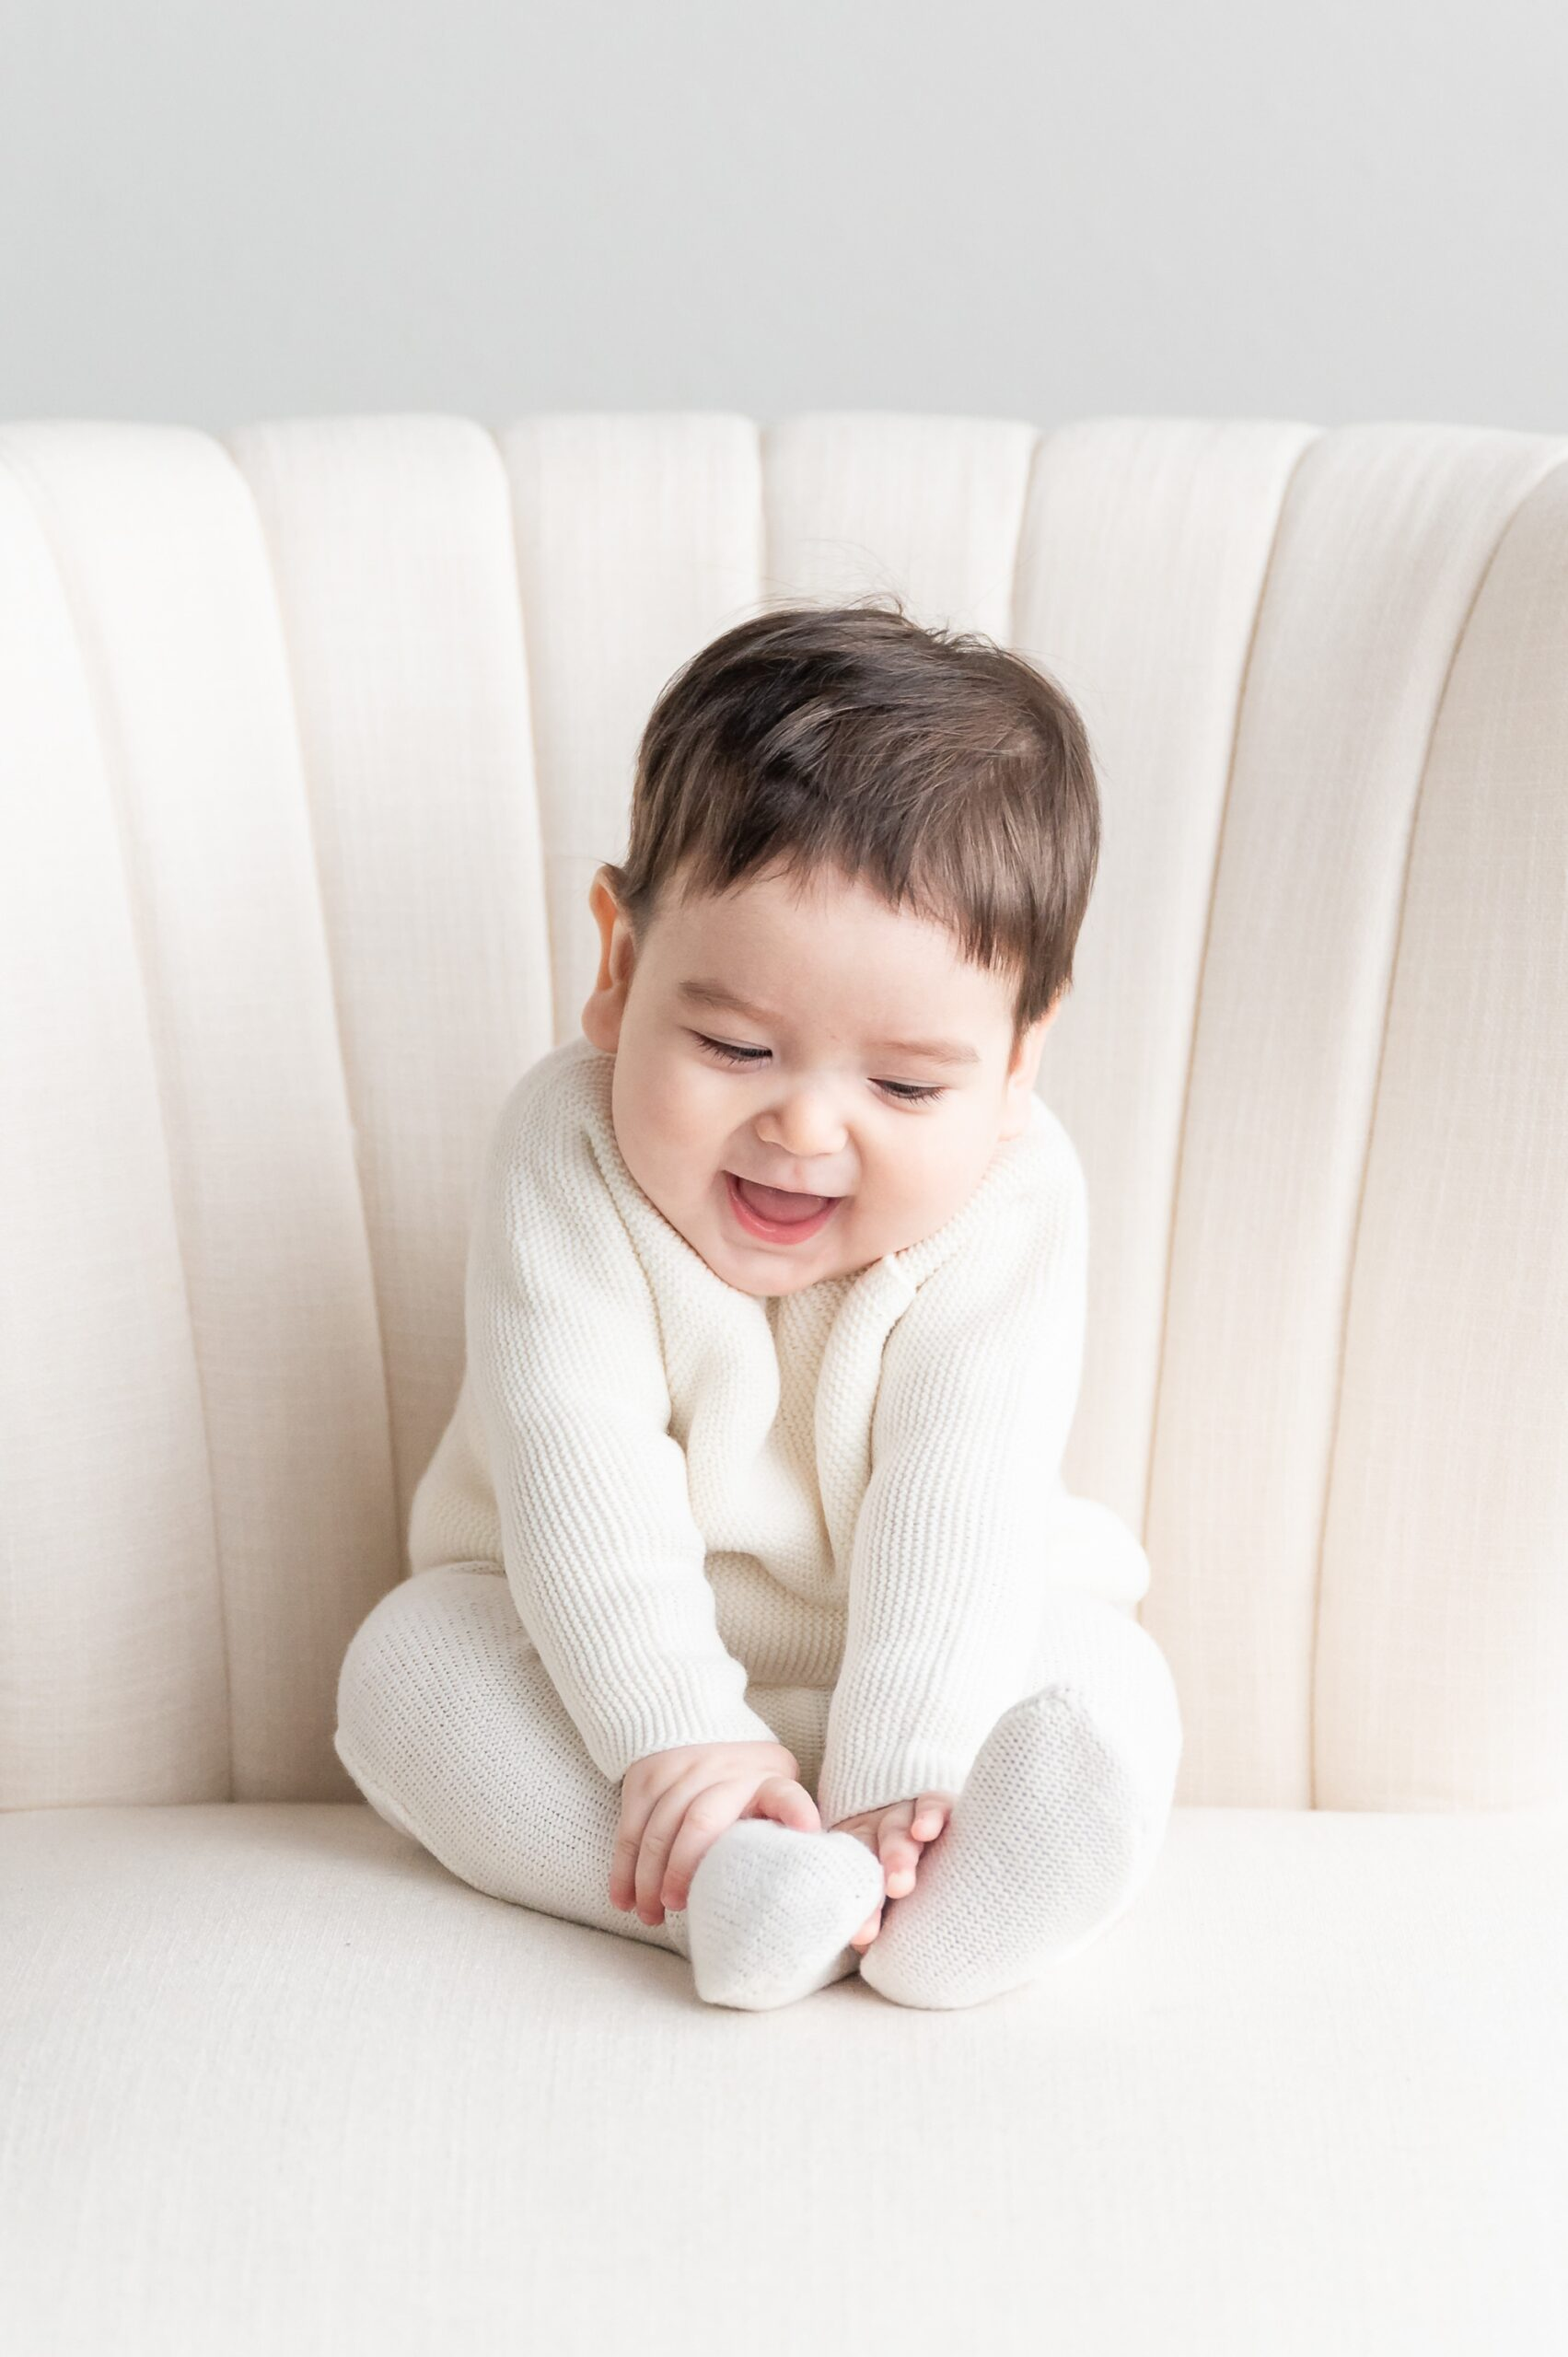 Laughing baby on white chair during studio session. Photo by Dallas baby photographer, Aimee Hamilton Photography